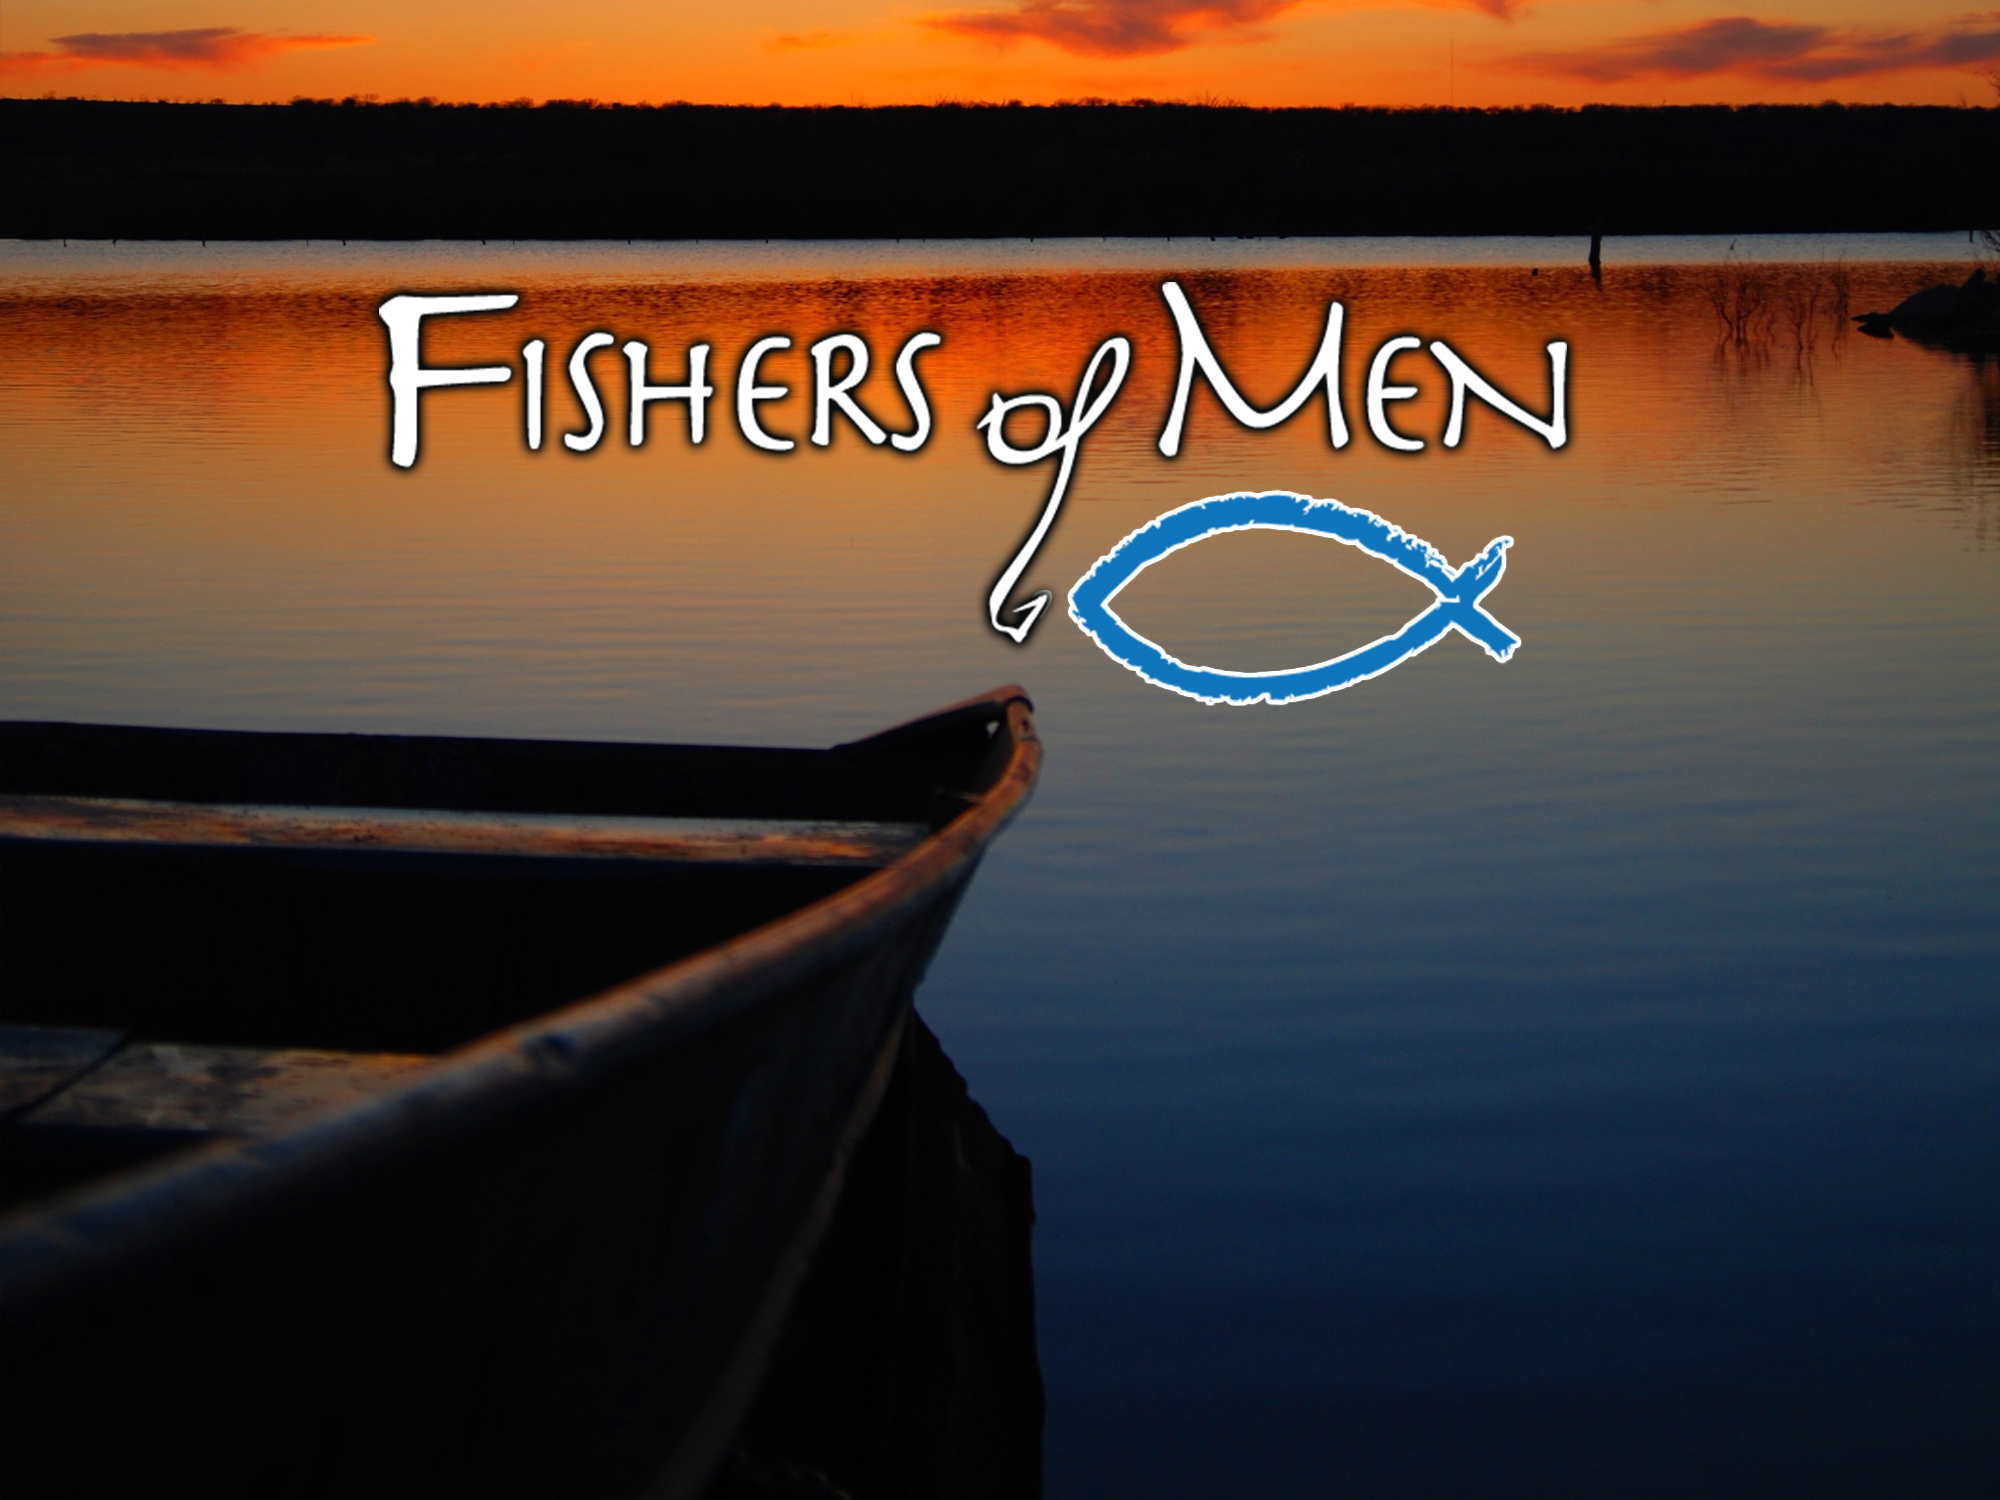 fishers of men Matthew 4:19 king james version (kjv) 19 and he saith unto them, follow me, and i will make you fishers of men.